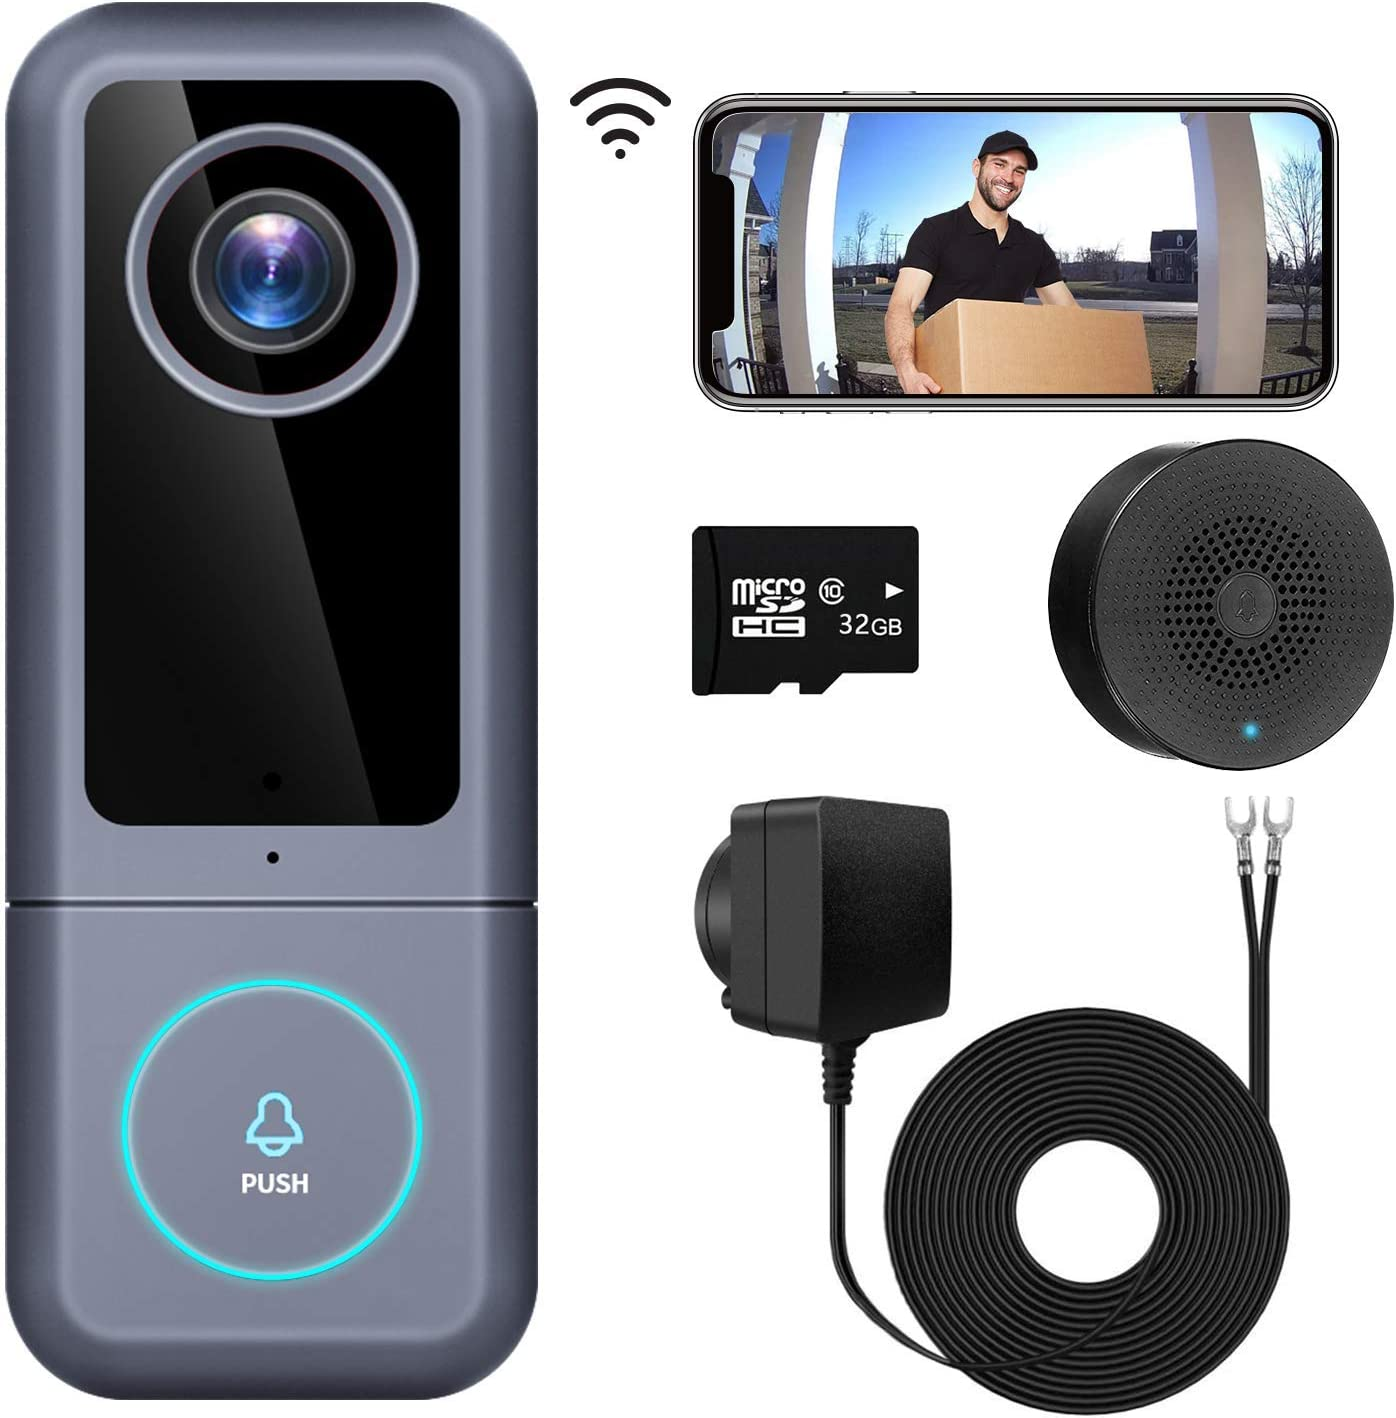 WiFi Video Doorbell Camera(Wired), Morecam 2K Ultra HD Camera Doorbell with Chime, Doorbell Wiring & Adapter, 2-Way Audio, Work with Alexa & Google hub, Cloud/SD Card Storage(32 GB SD Card Included)